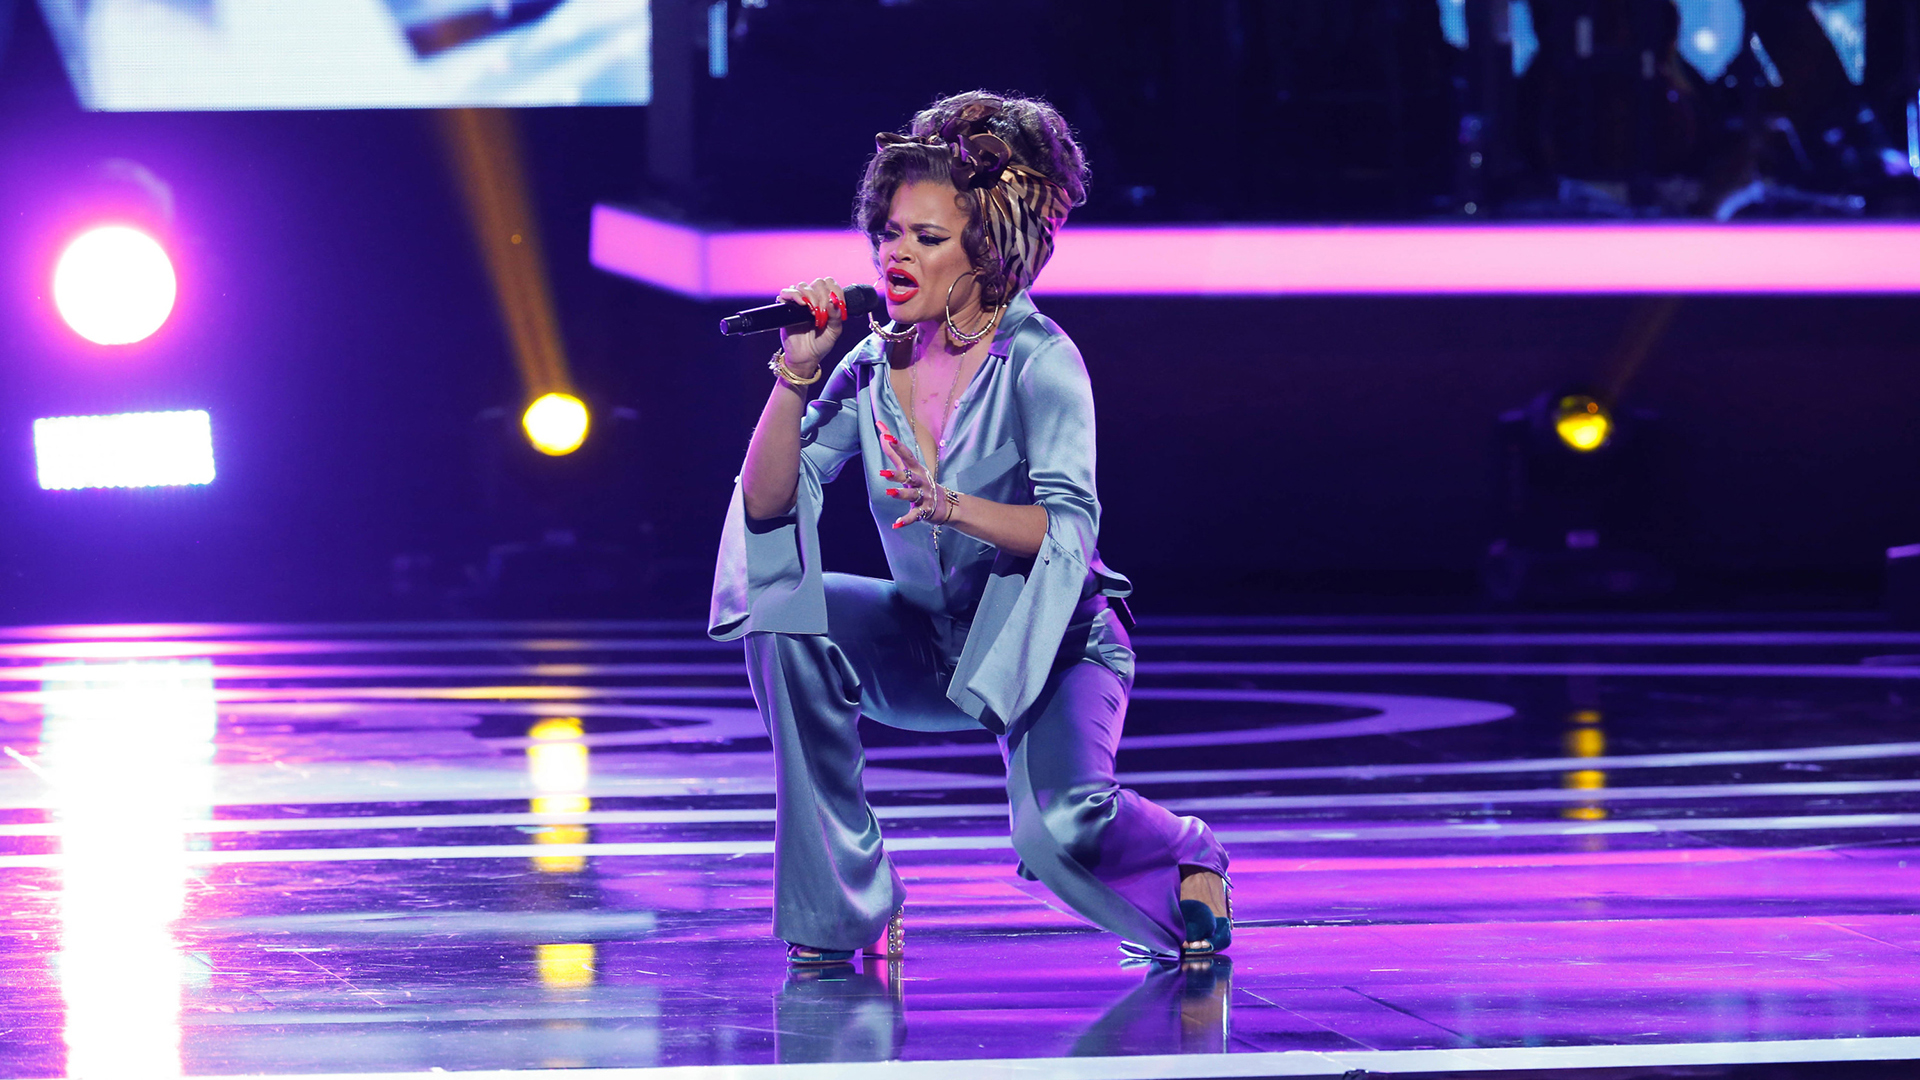 Andra Day performs as part of the opening medley at Bee Gees Tribute